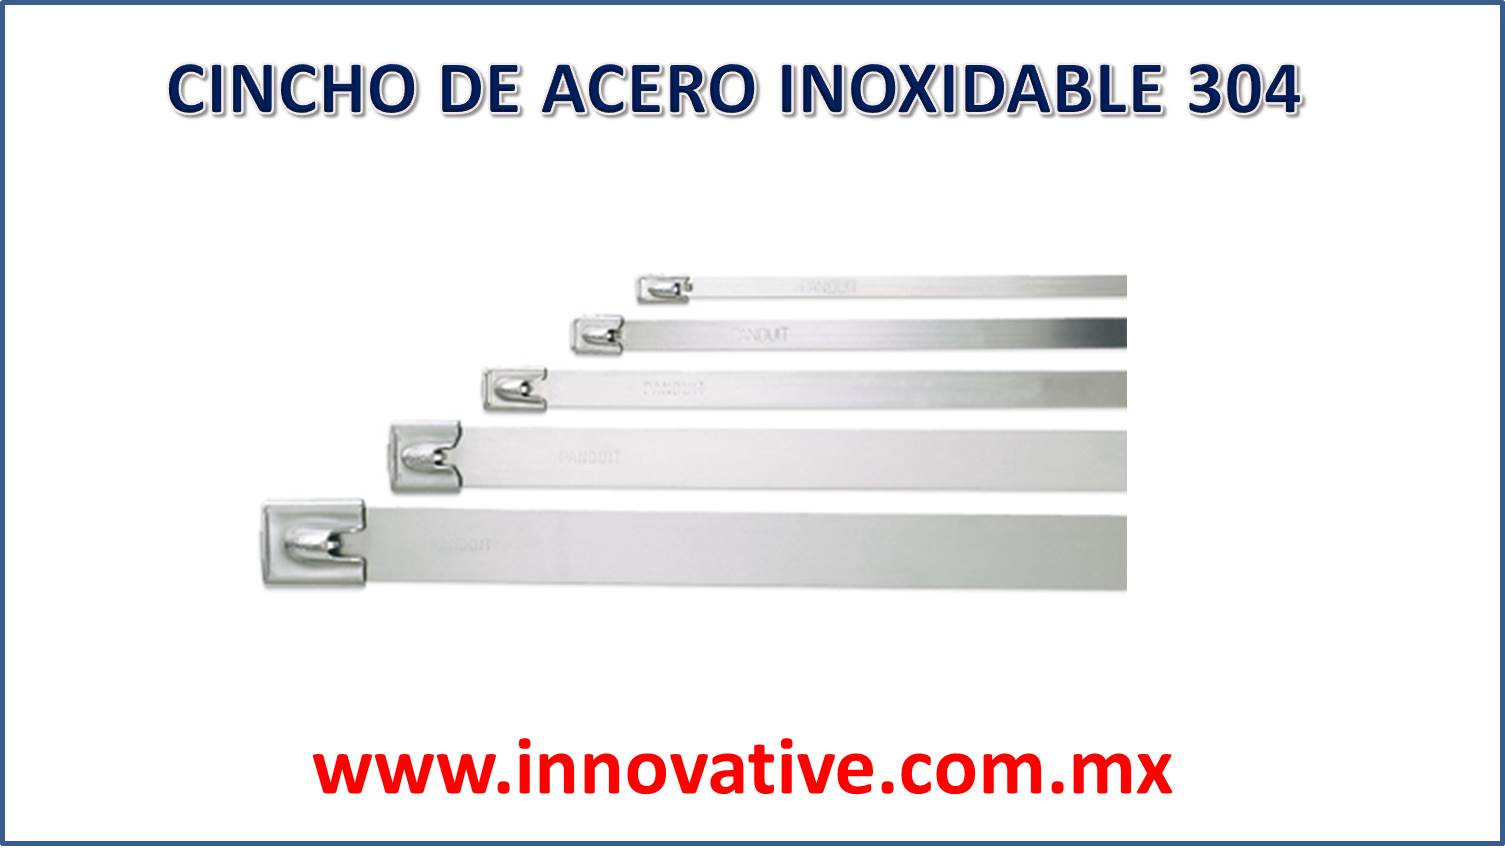 Cincho de acero inoxidable 304 for Toalleros de acero inoxidable